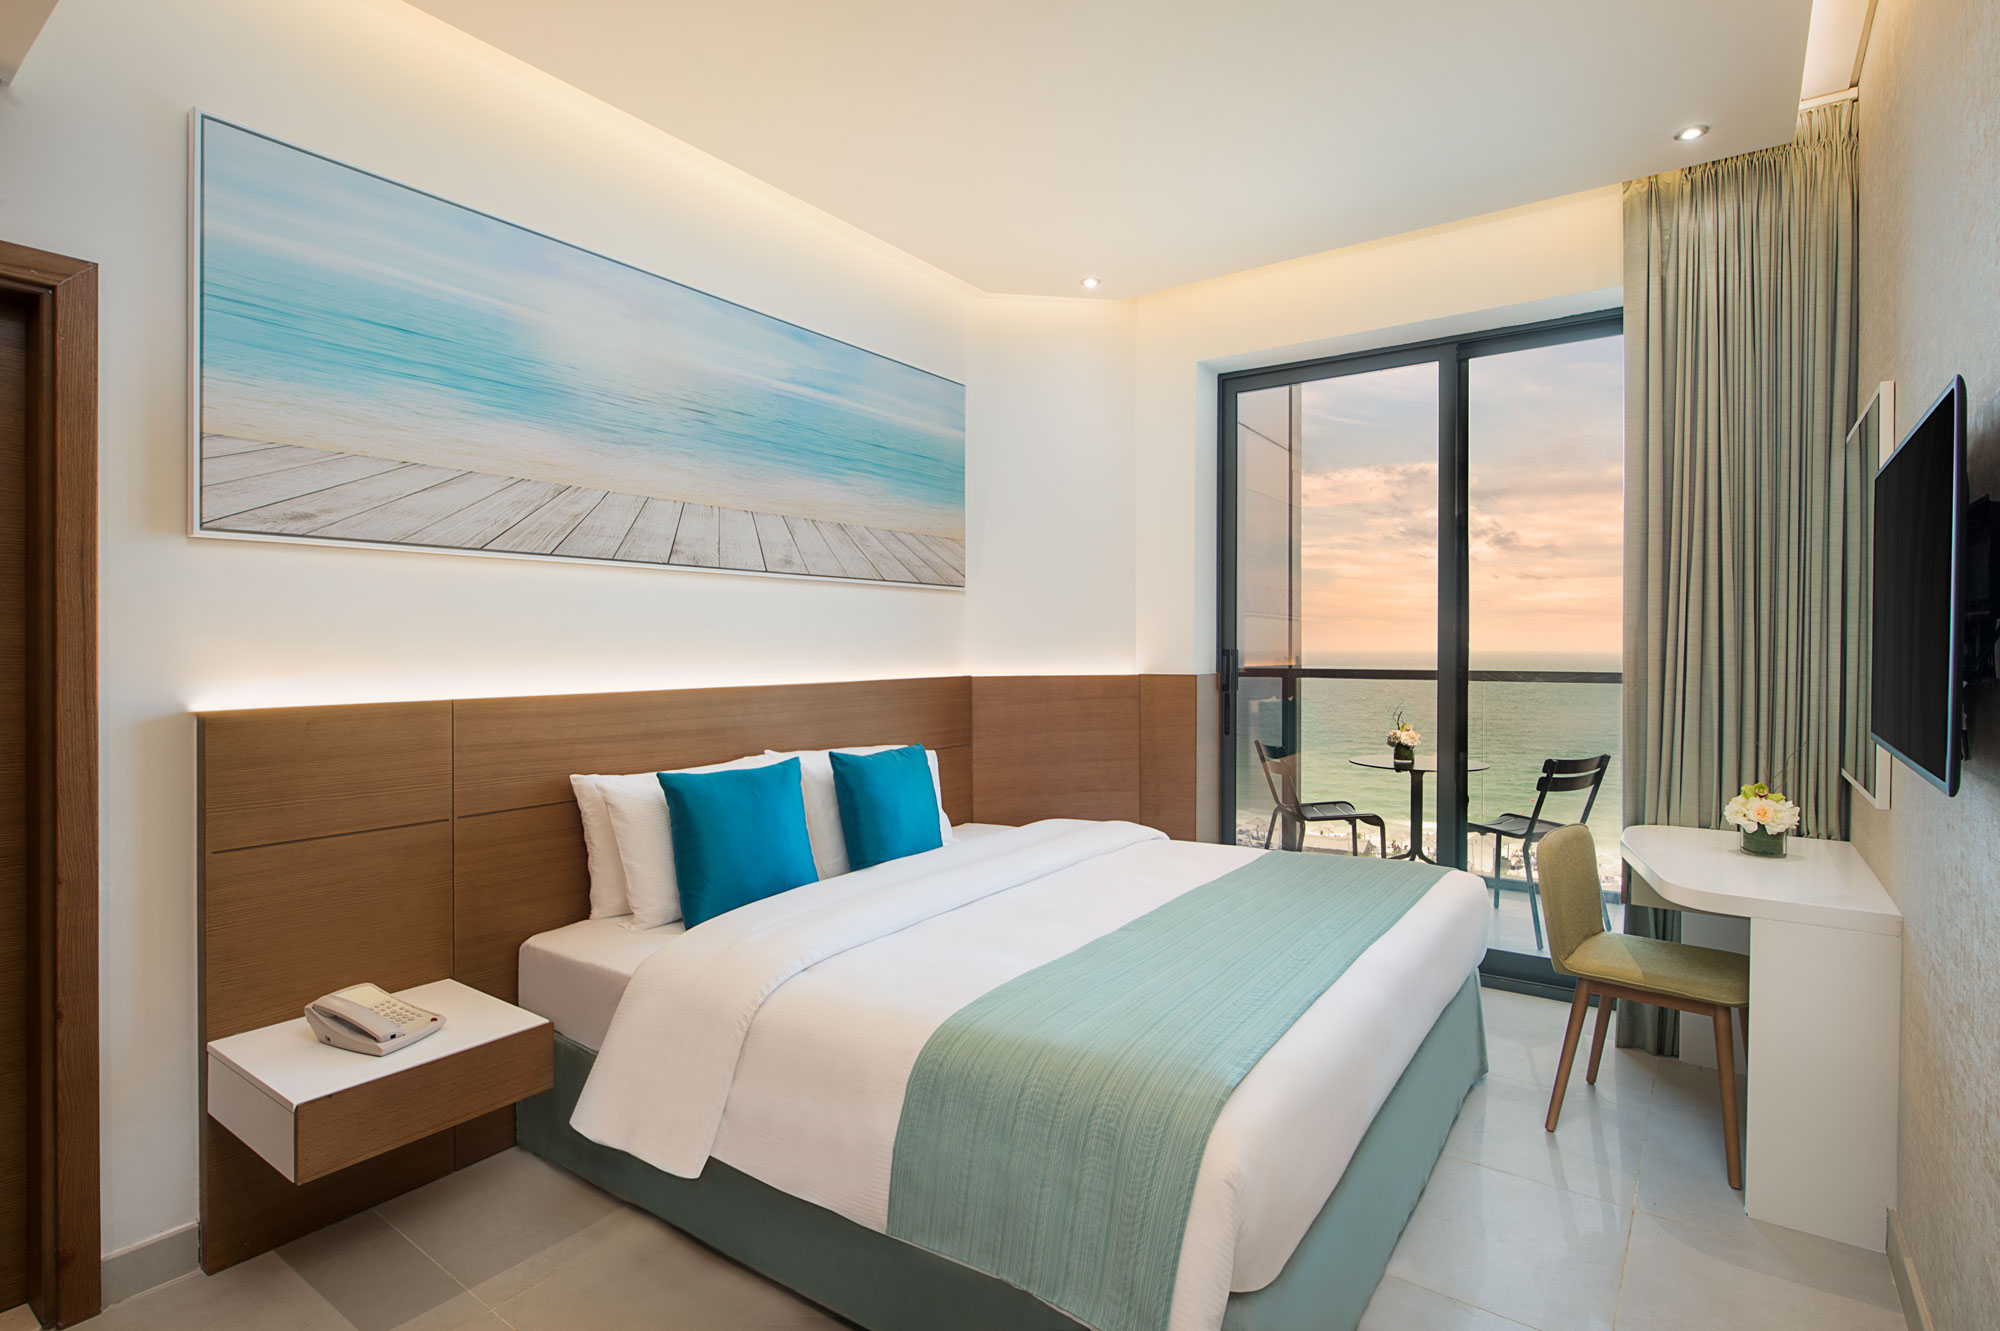 Wyndham Garden Ajman | Book Hotel Rooms Now